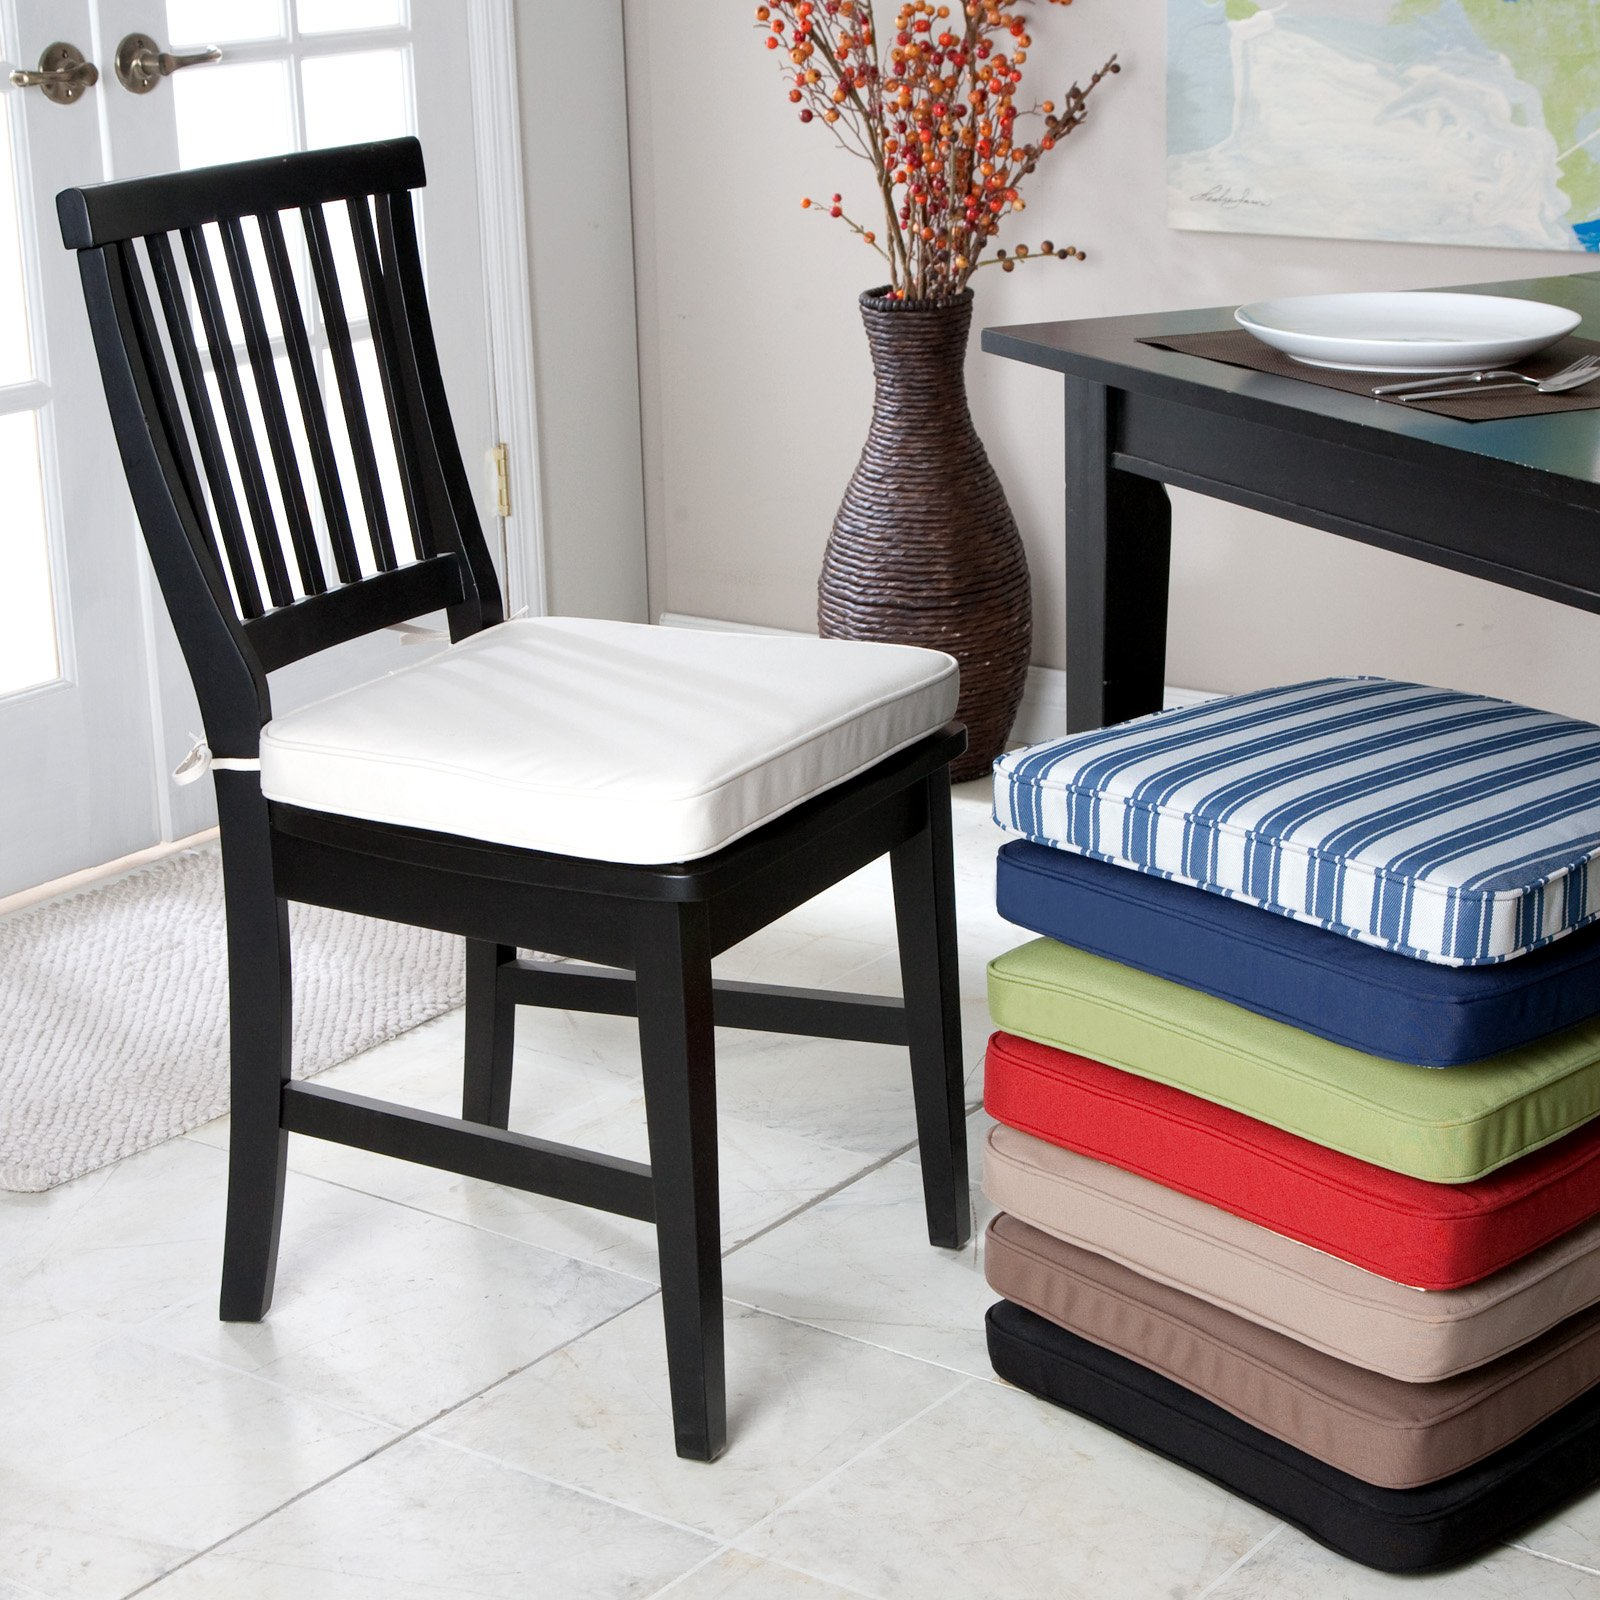 Charming dining room chair cushions ideas to add style and for Dining room chair ideas